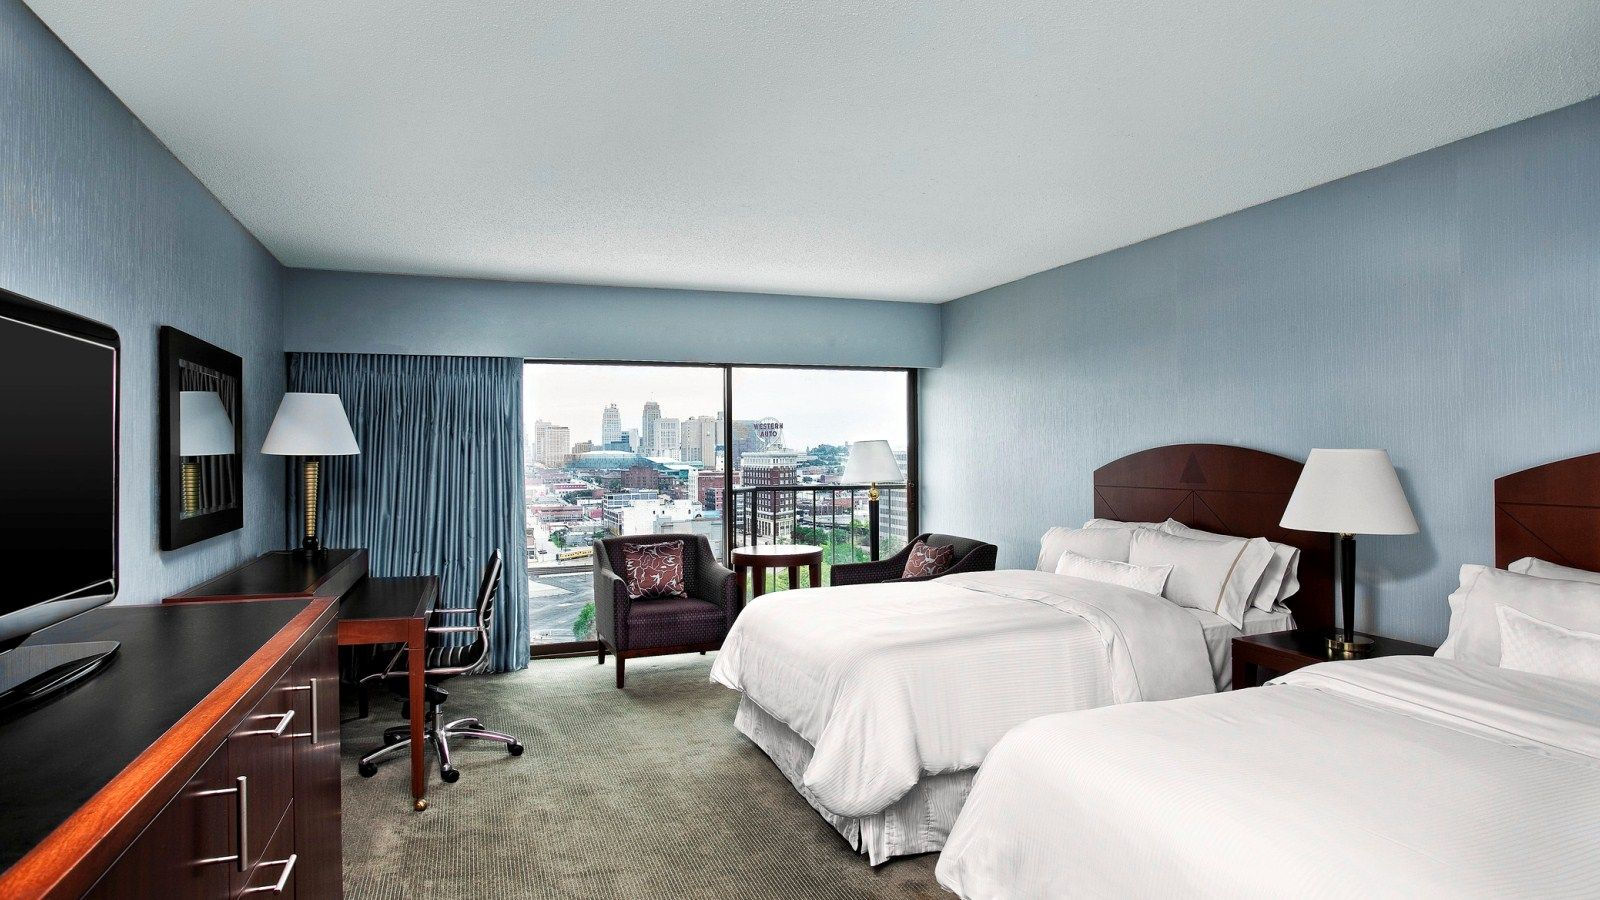 Kansas City Lodging | The Westin Kansas City Hotel at Crown Center